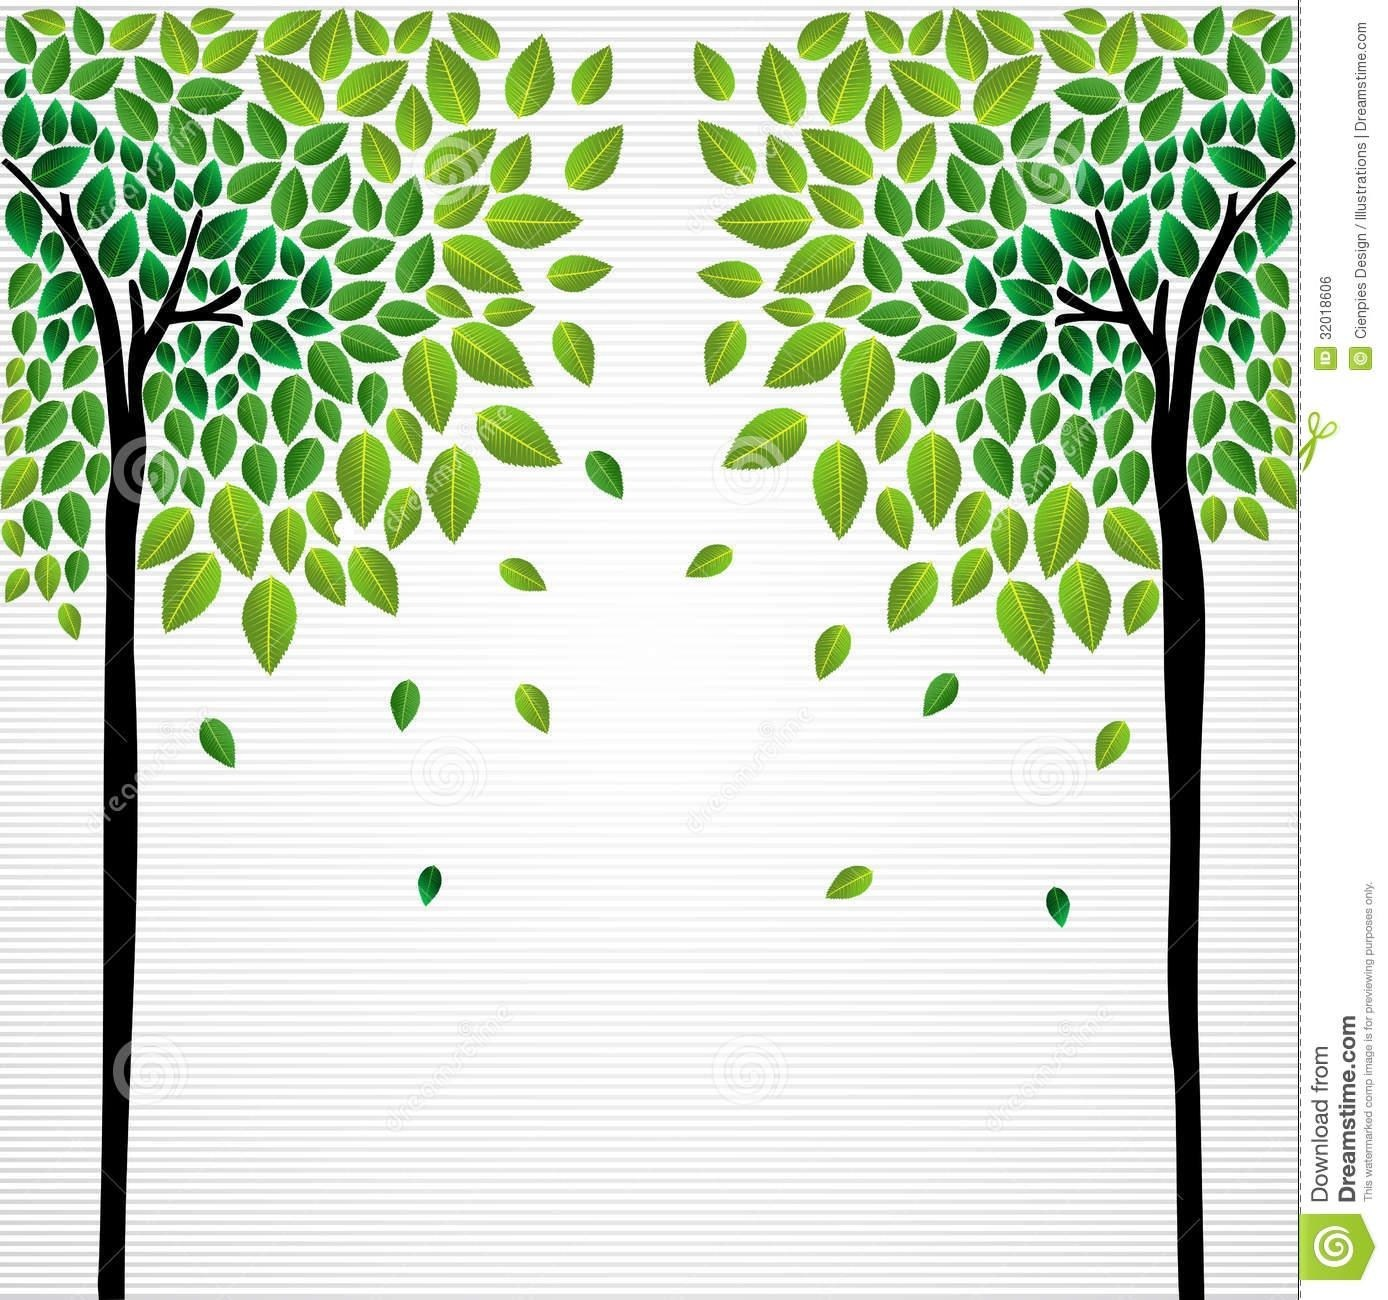 1388x1300 Tree Drawing Easy With Leaves Simple Living Tree In The World Places